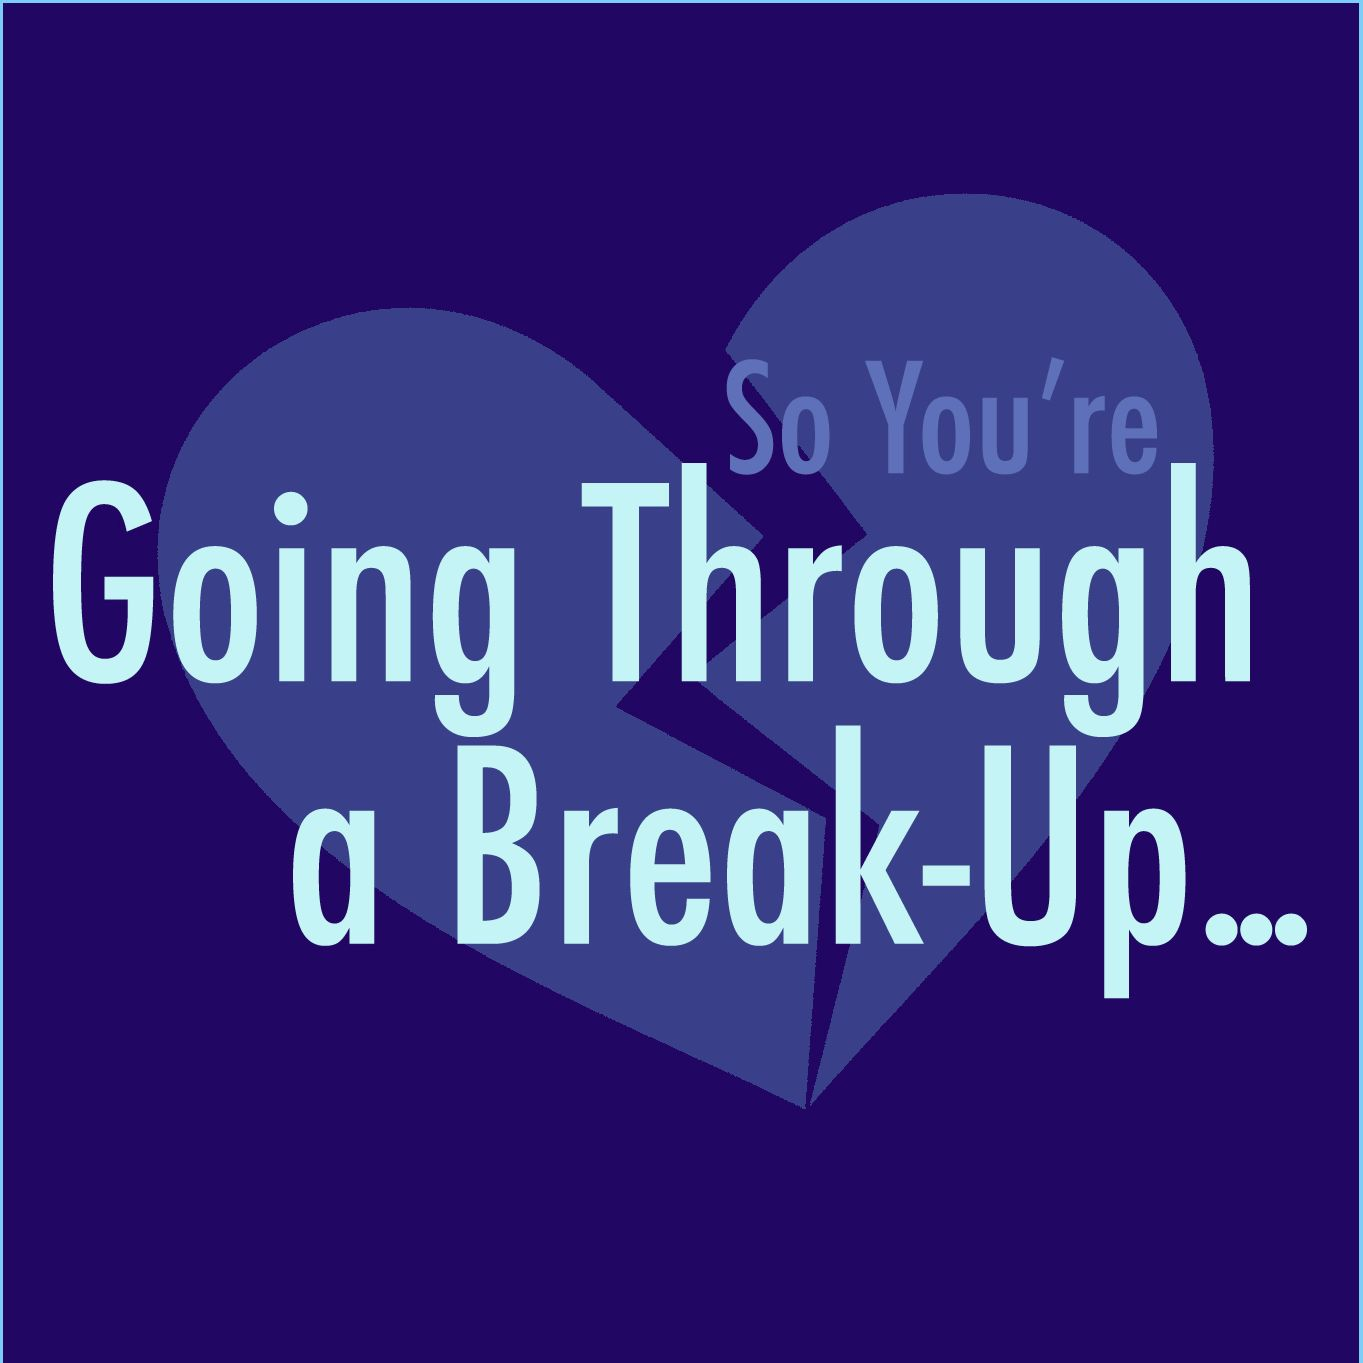 So, You're Going Through a Break-up